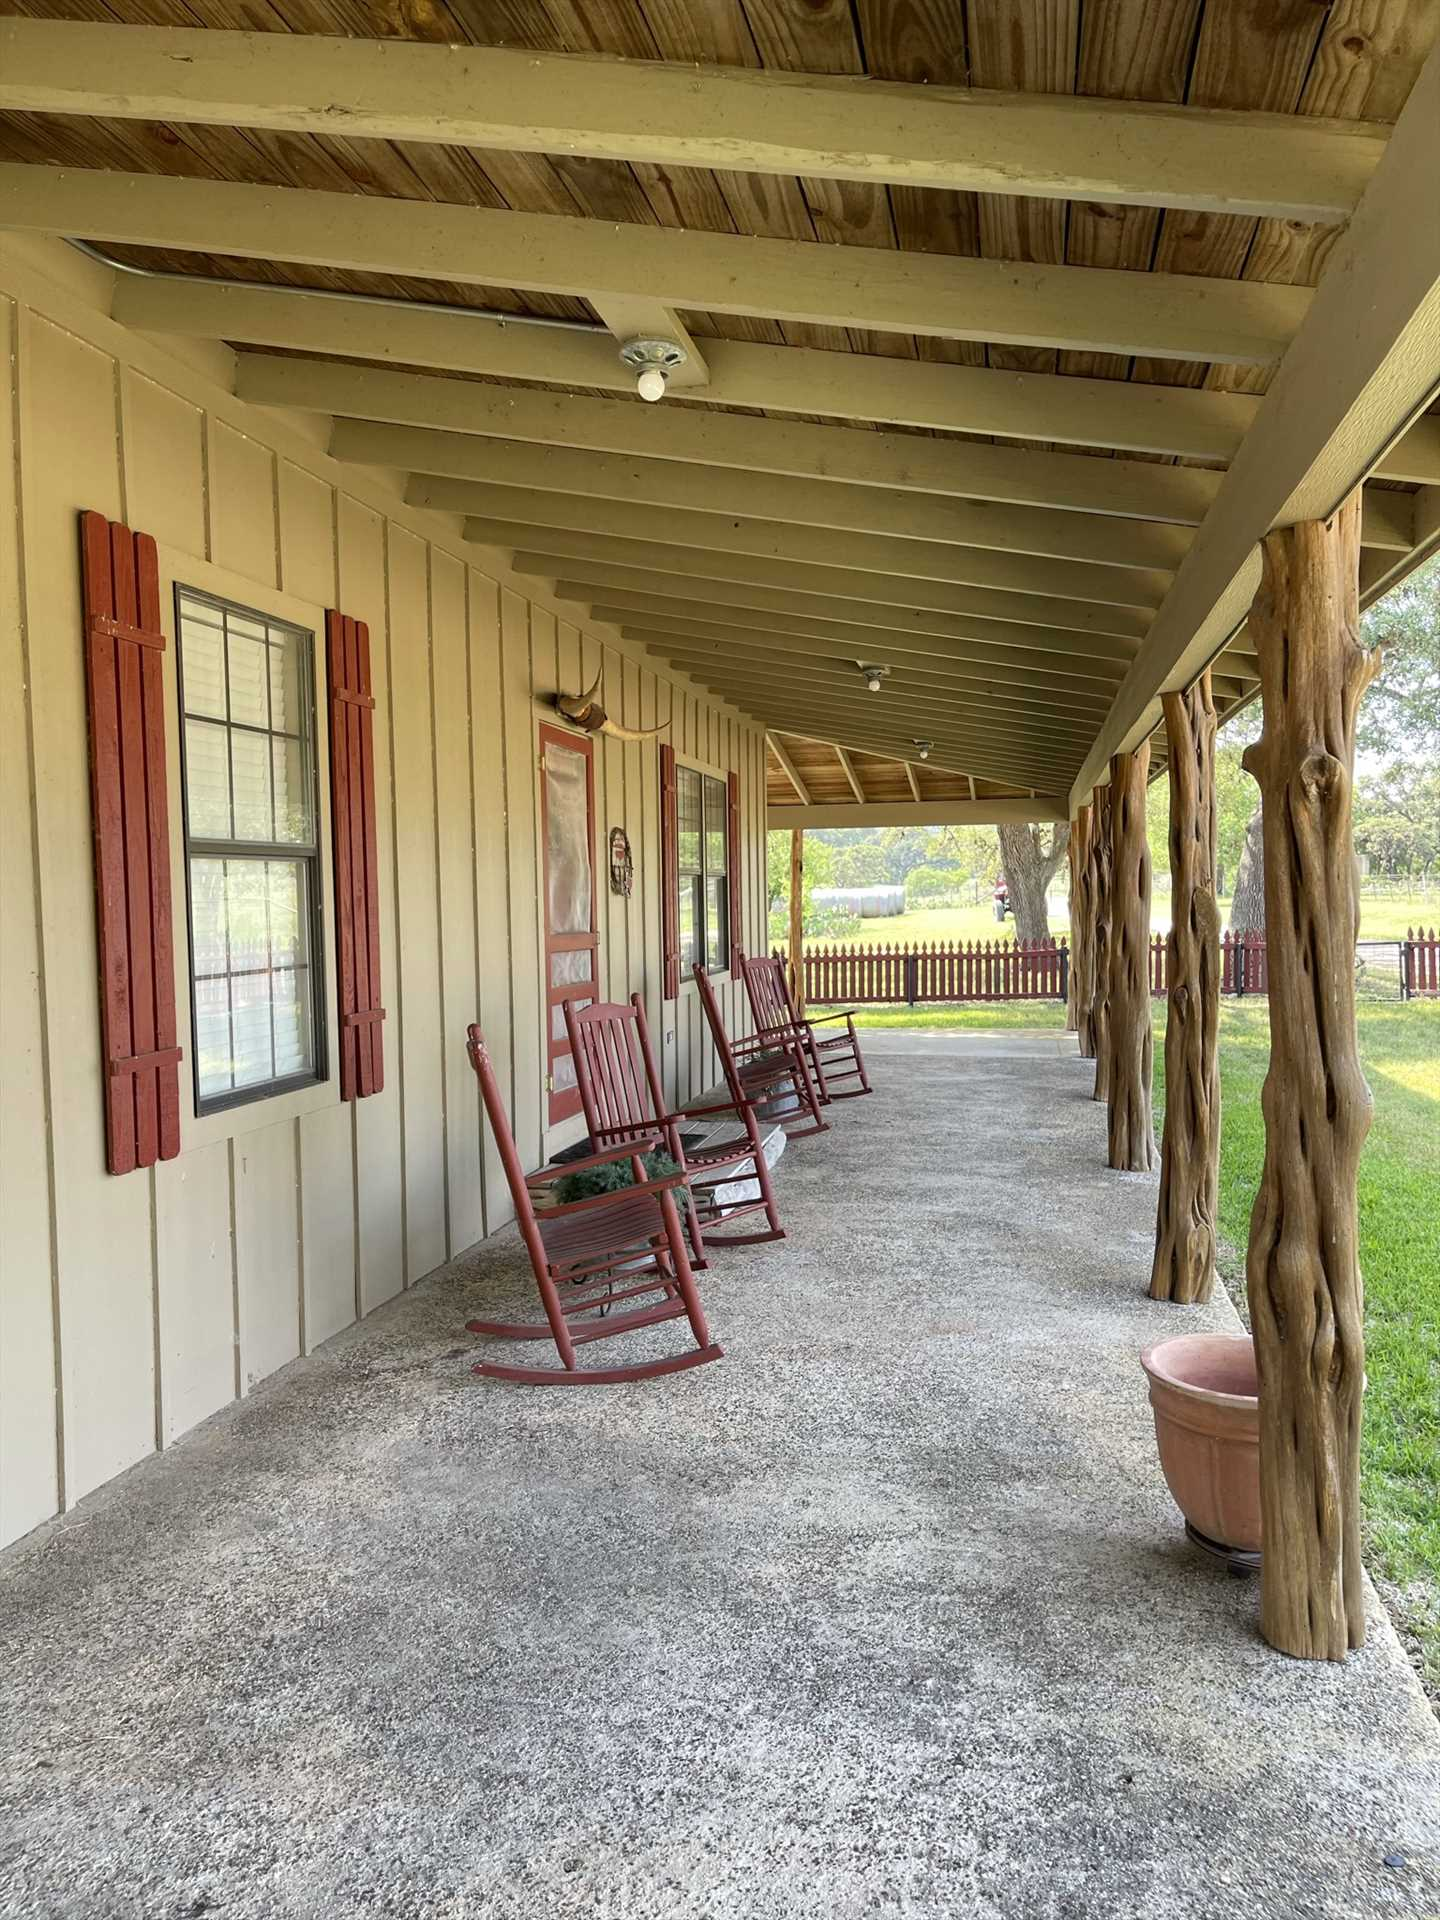 Whether it's a sip of morning coffee or a glass of Texas wine, it all goes down better in the fresh country air!